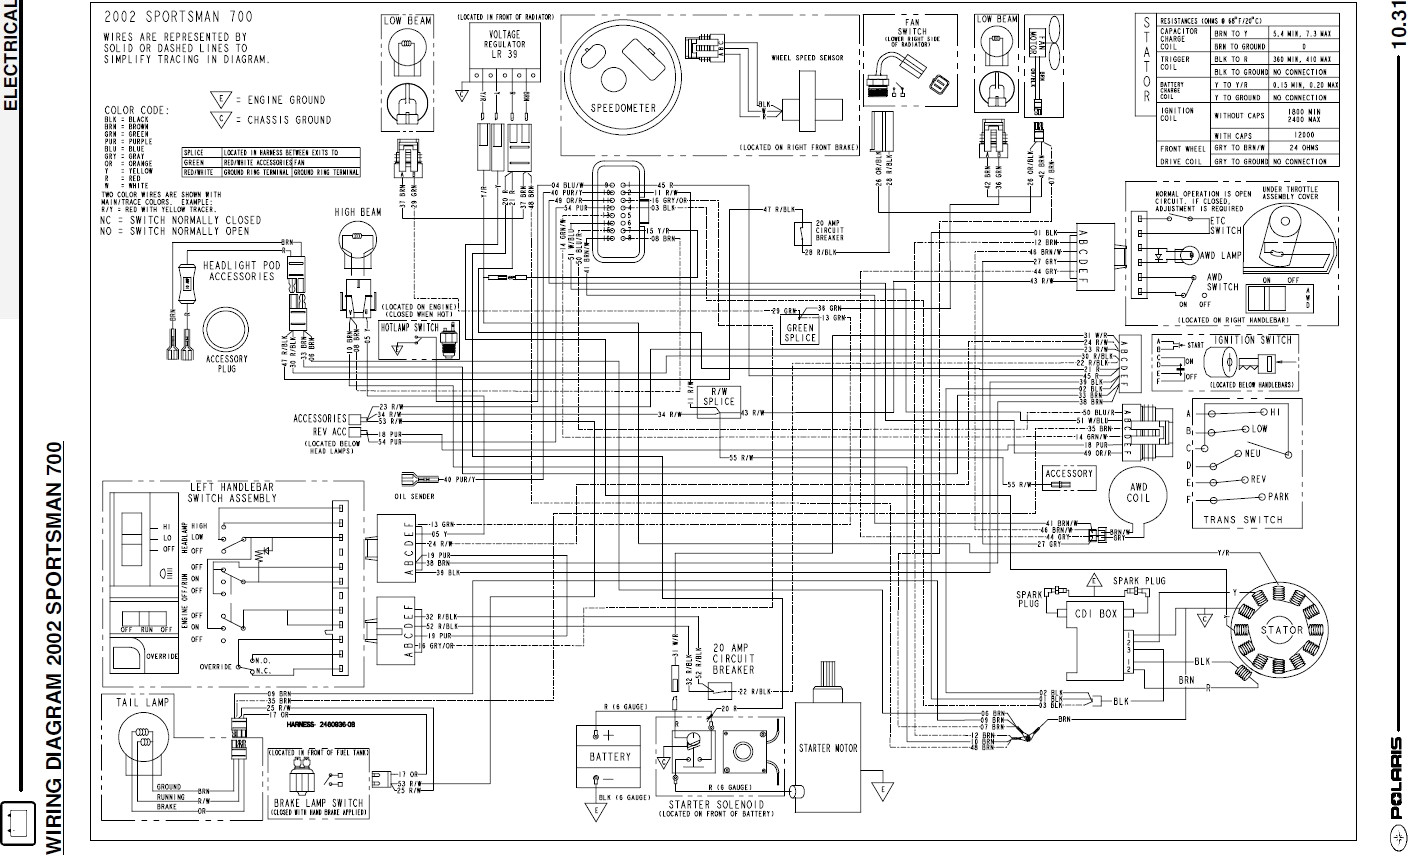 2004 polaris sportsman 400 wiring diagram polaris 400l wiring schematic diagram pictures wire center u2022 rh grooveguard co 2005 polaris sportsman 500 wiring diagram 2004 polaris sportsman polaris 500 wiring diagram data schematics wiring diagram \u2022